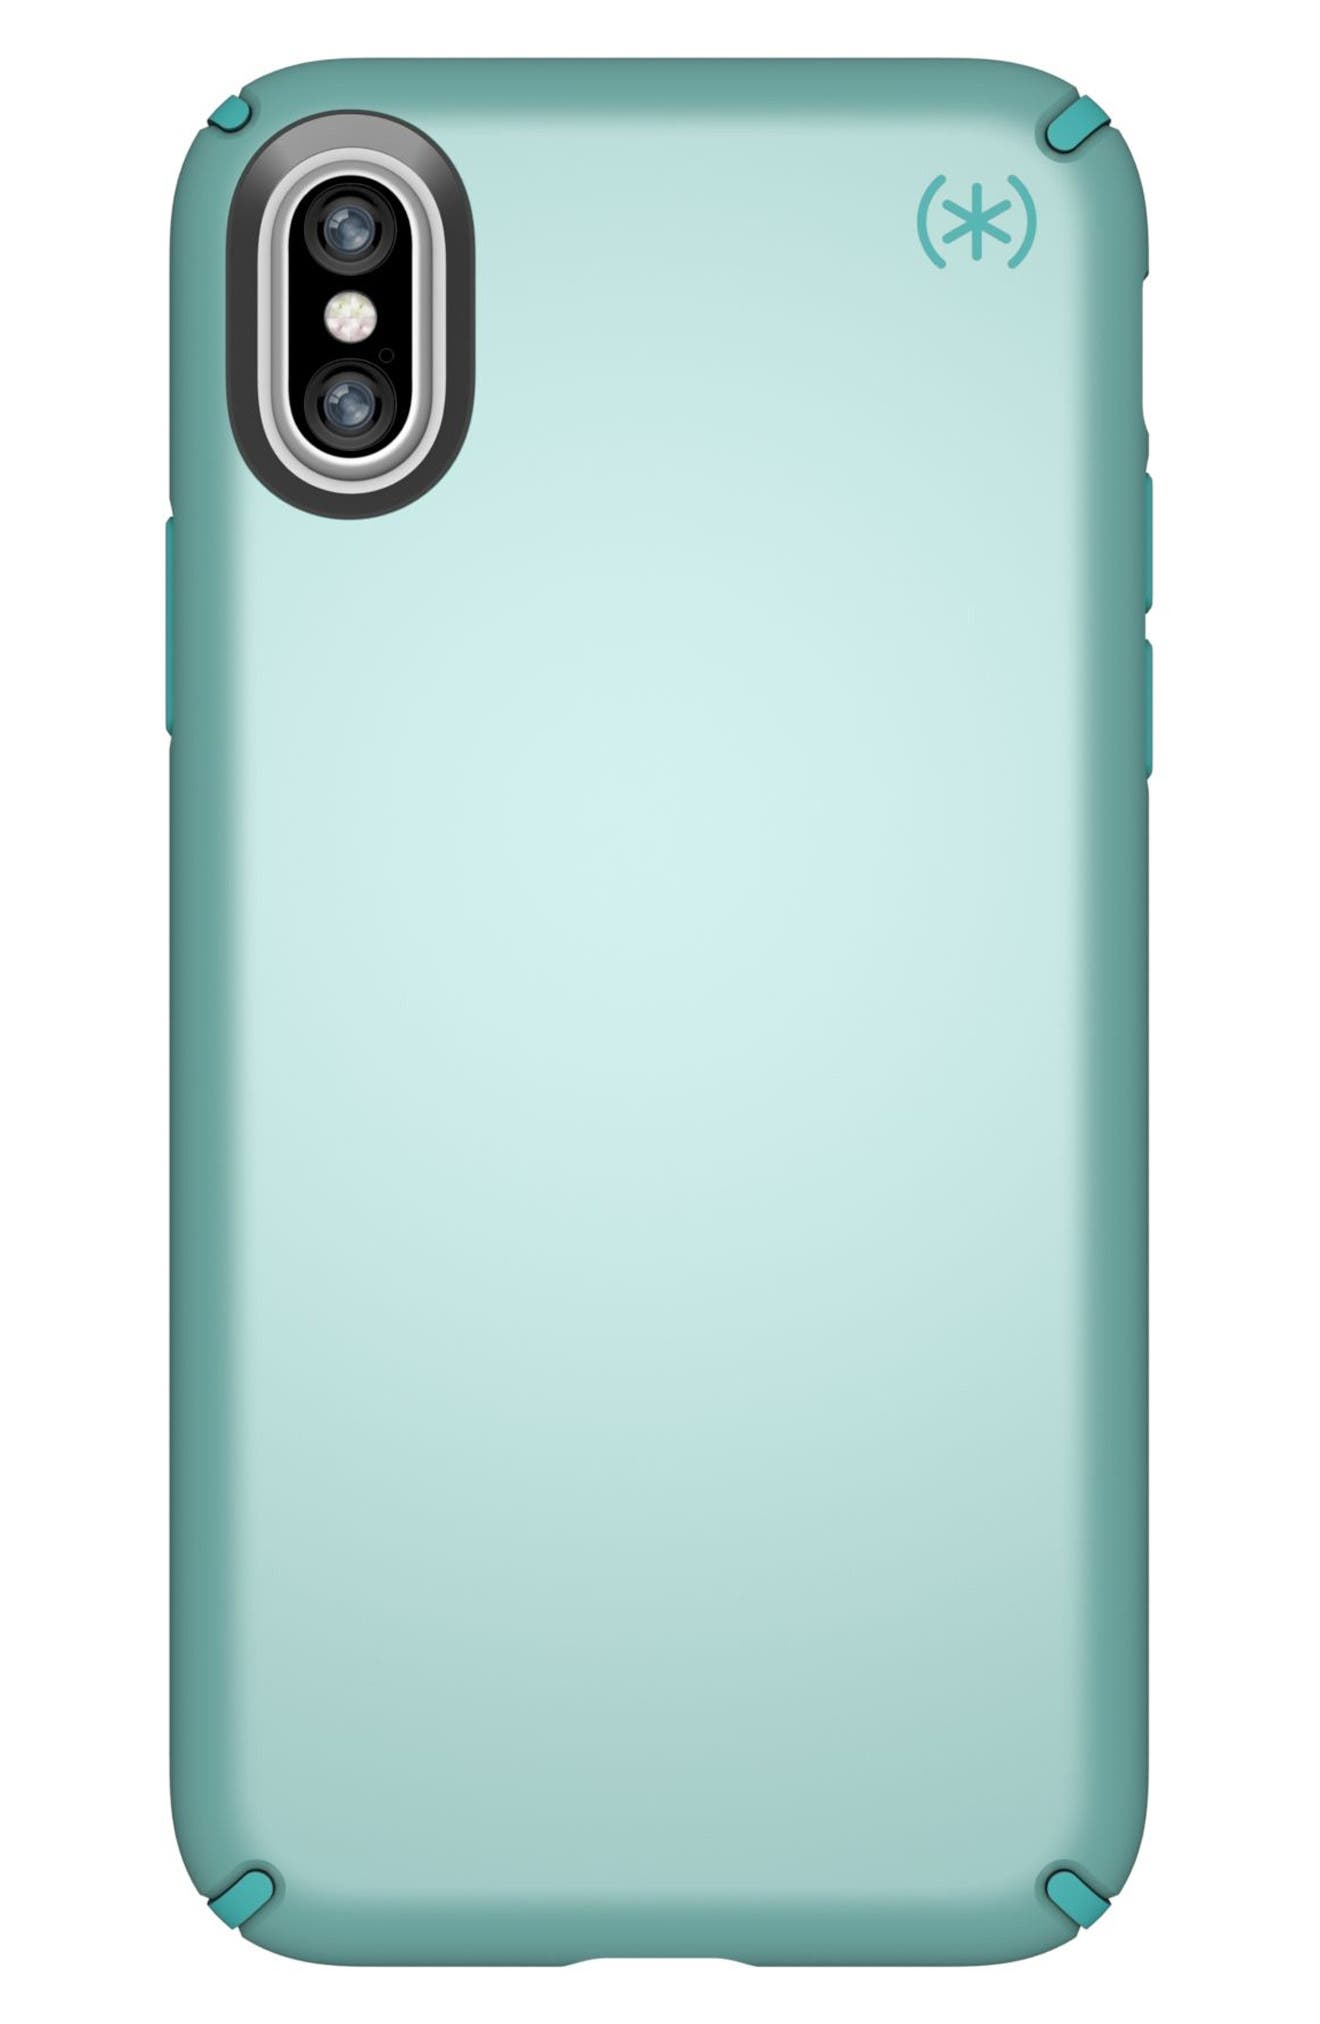 iPhone X Case,                             Main thumbnail 1, color,                             Peppermint Green / Teal